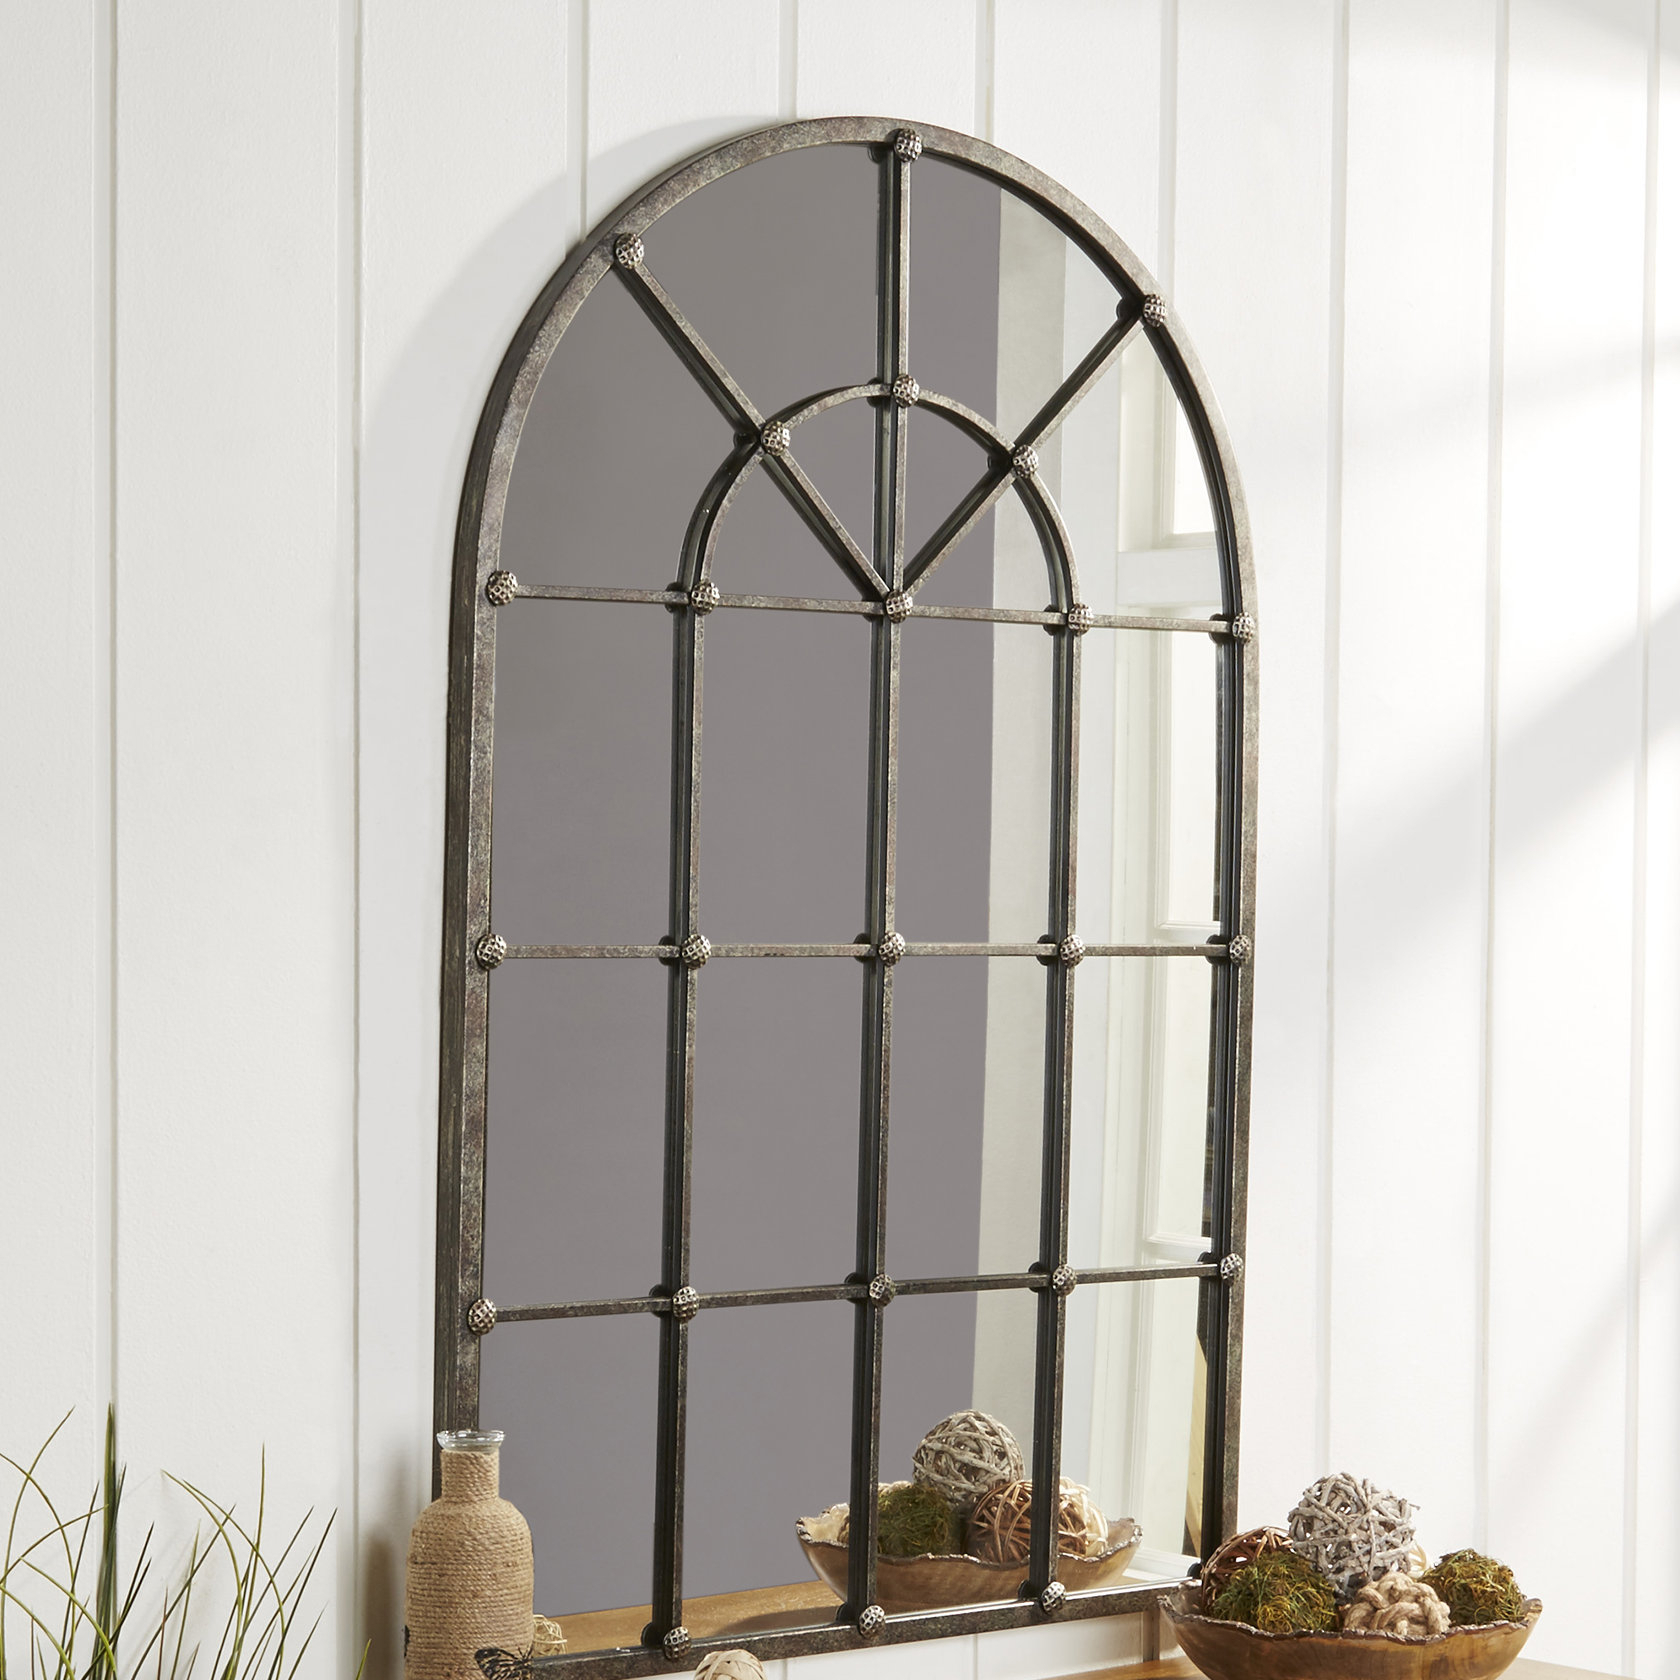 Romain Accent Mirror & Reviews | Joss & Main With Regard To Yatendra Cottage/country Beveled Accent Mirrors (View 17 of 20)